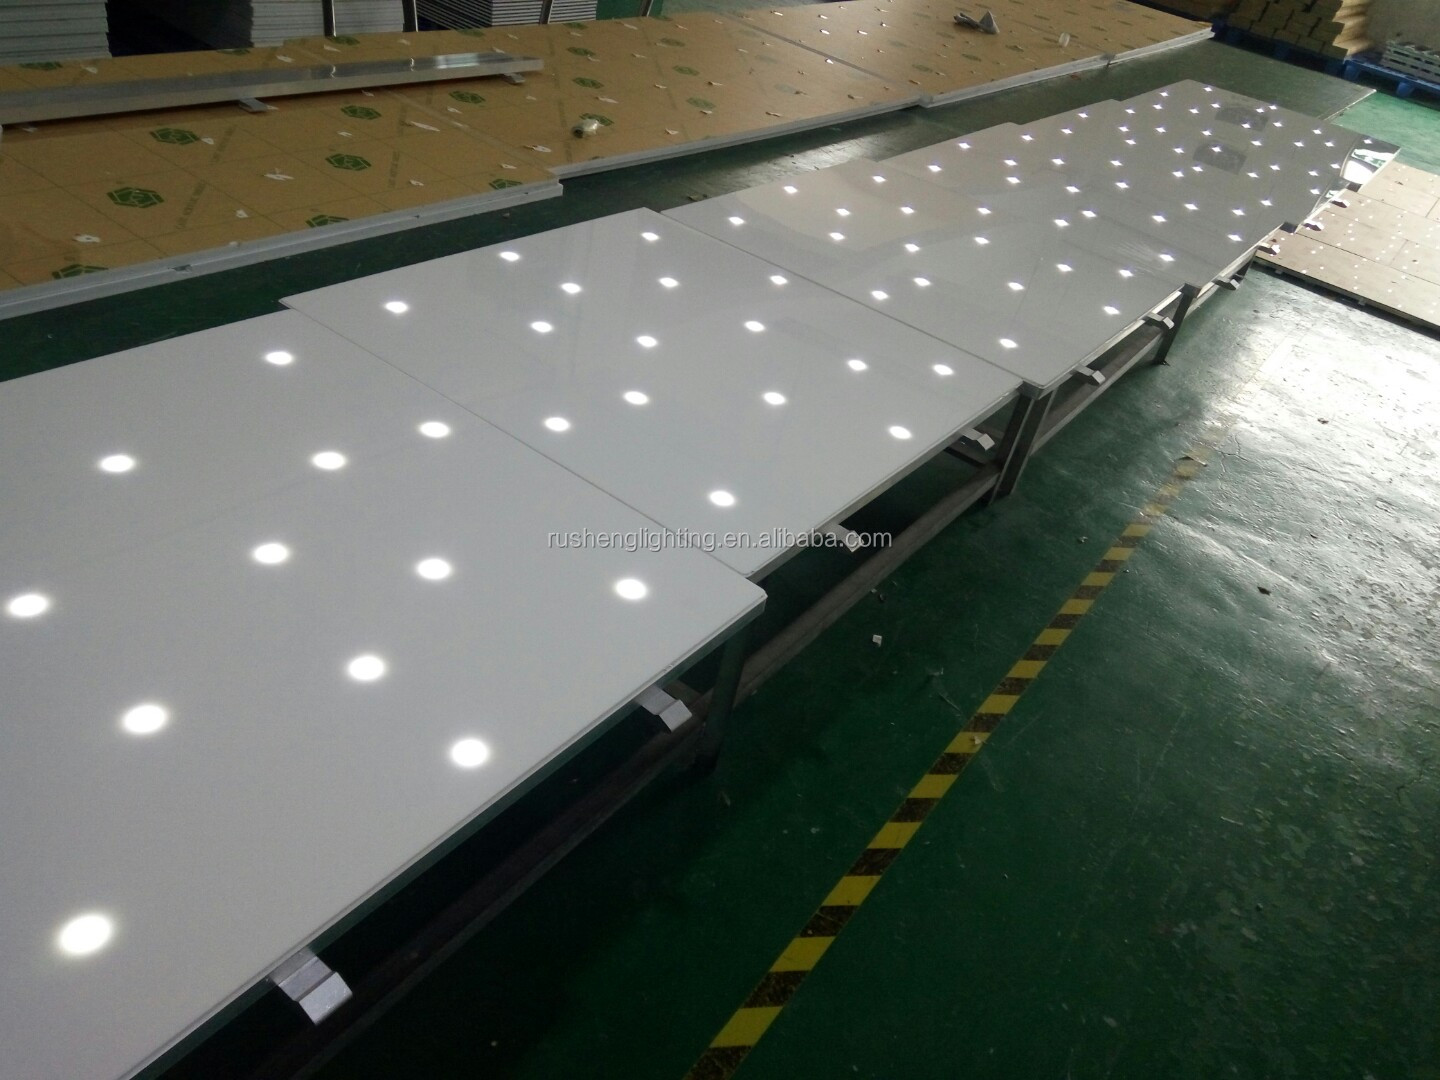 wholesale led stage lighting wedding hotel decoration waterproof Starlight White Led dance floor tiles